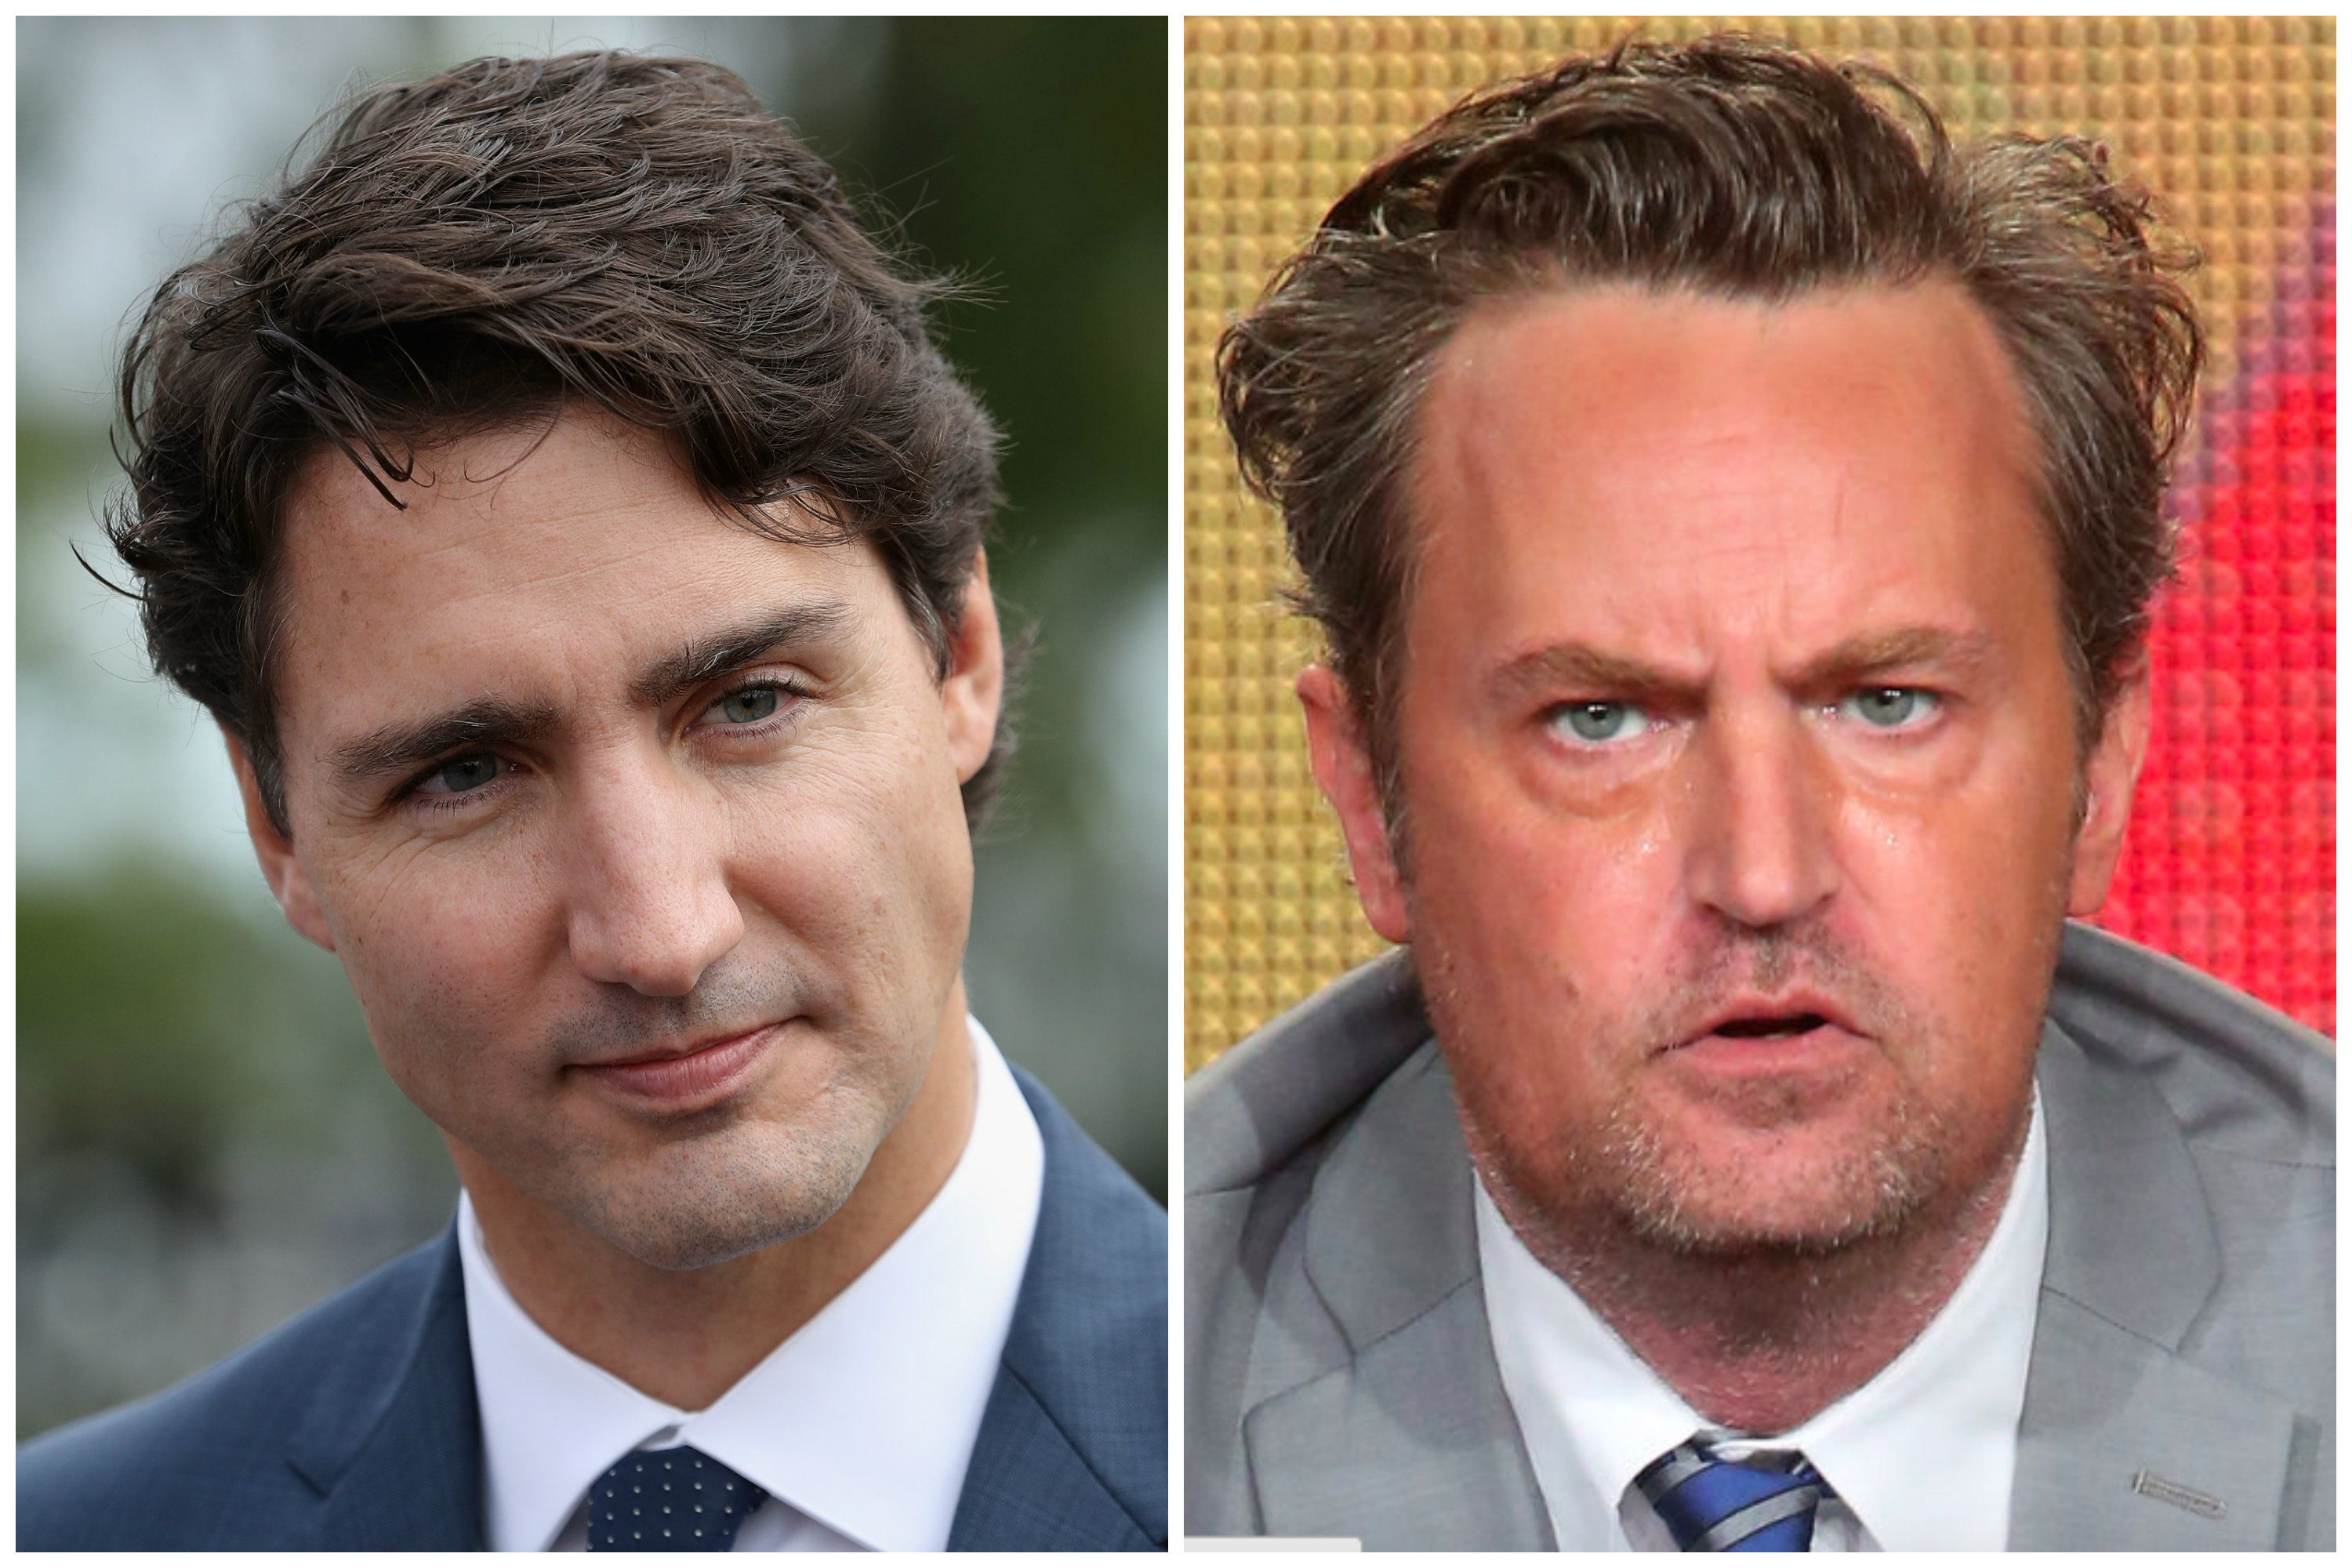 Matthew Perry once beat up Justin Trudeau. Now, Trudeau wants to defend himself.